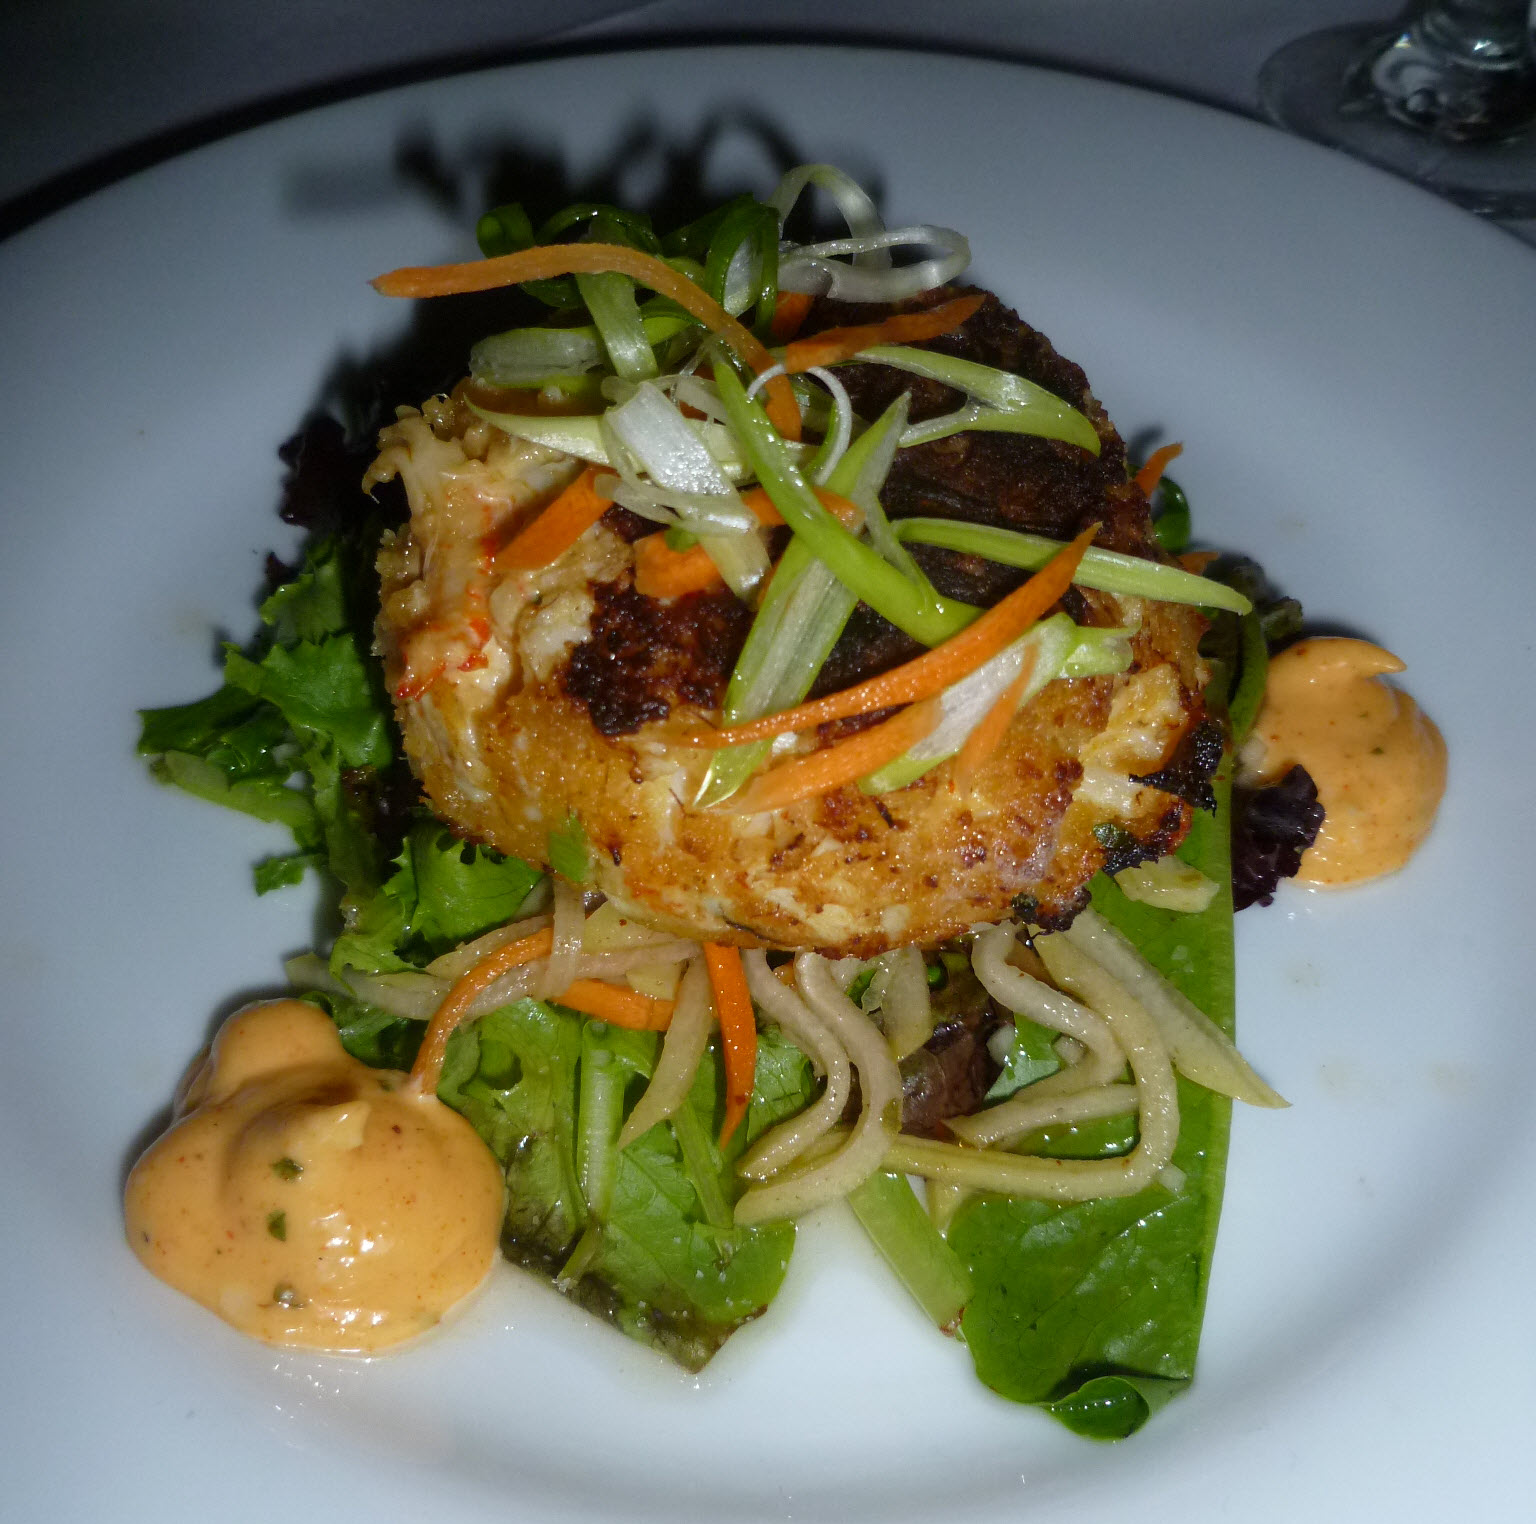 Ft lauderdale waterfront intracoastal restaurant blue moon for Blue moon fish company menu